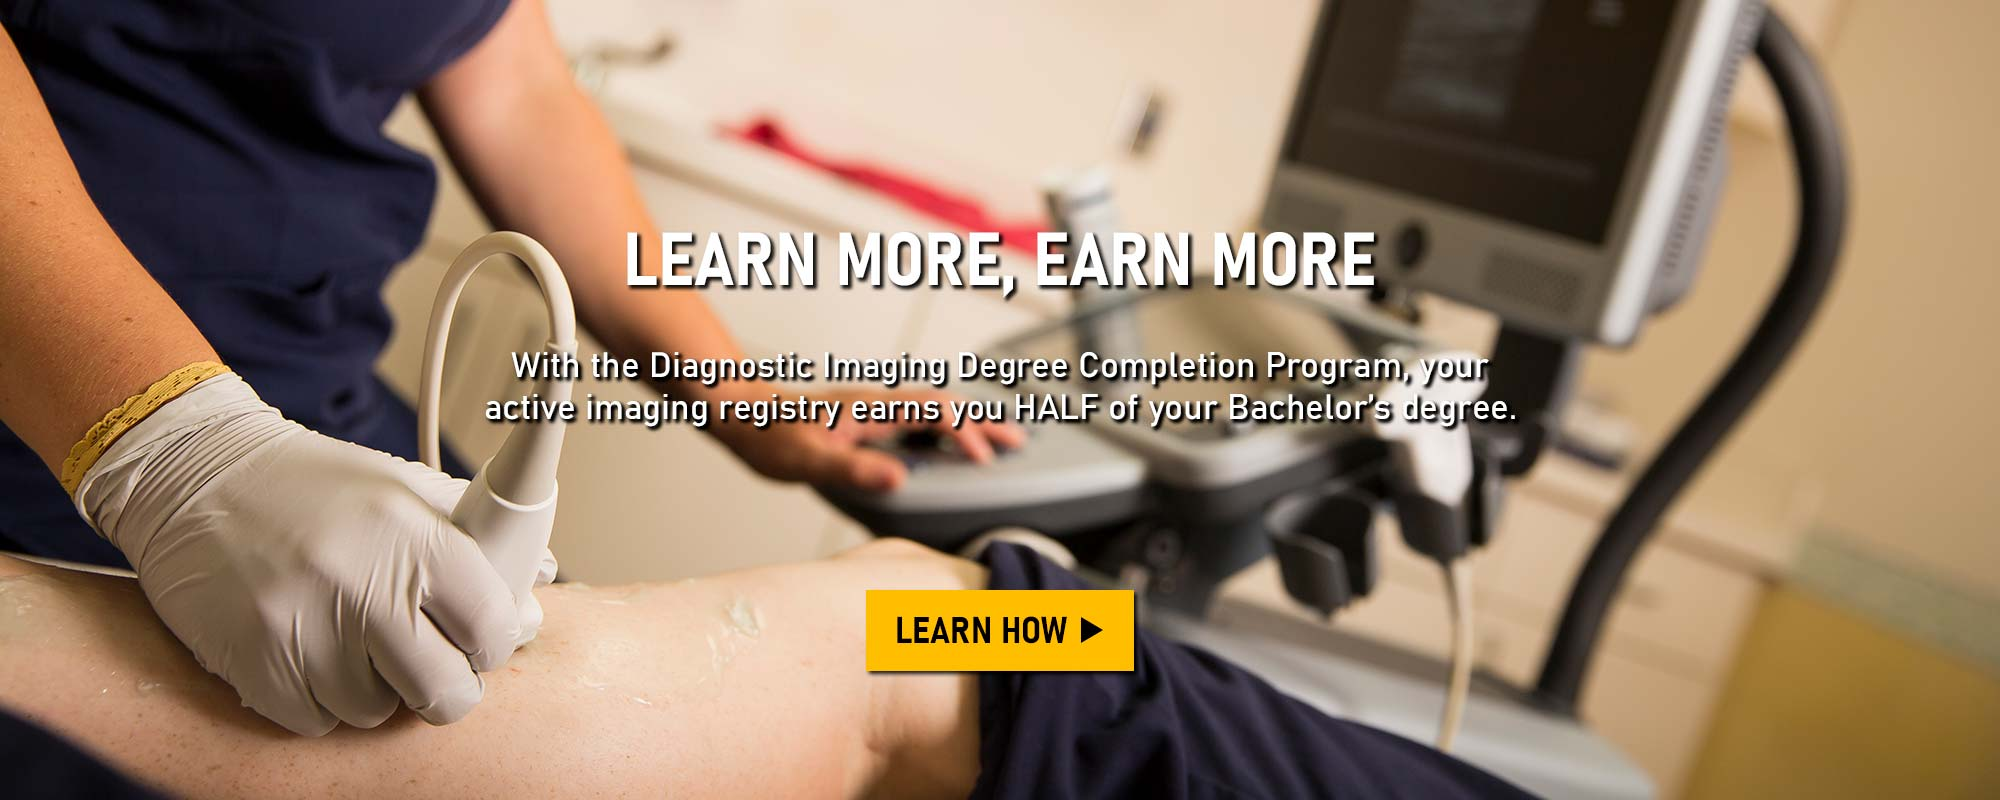 Learn More, Earn More. With the Diagnostic Imaging Degree Completion Program, your active imaging registry earns you HALF of your Bachelor's degree. Learn How >